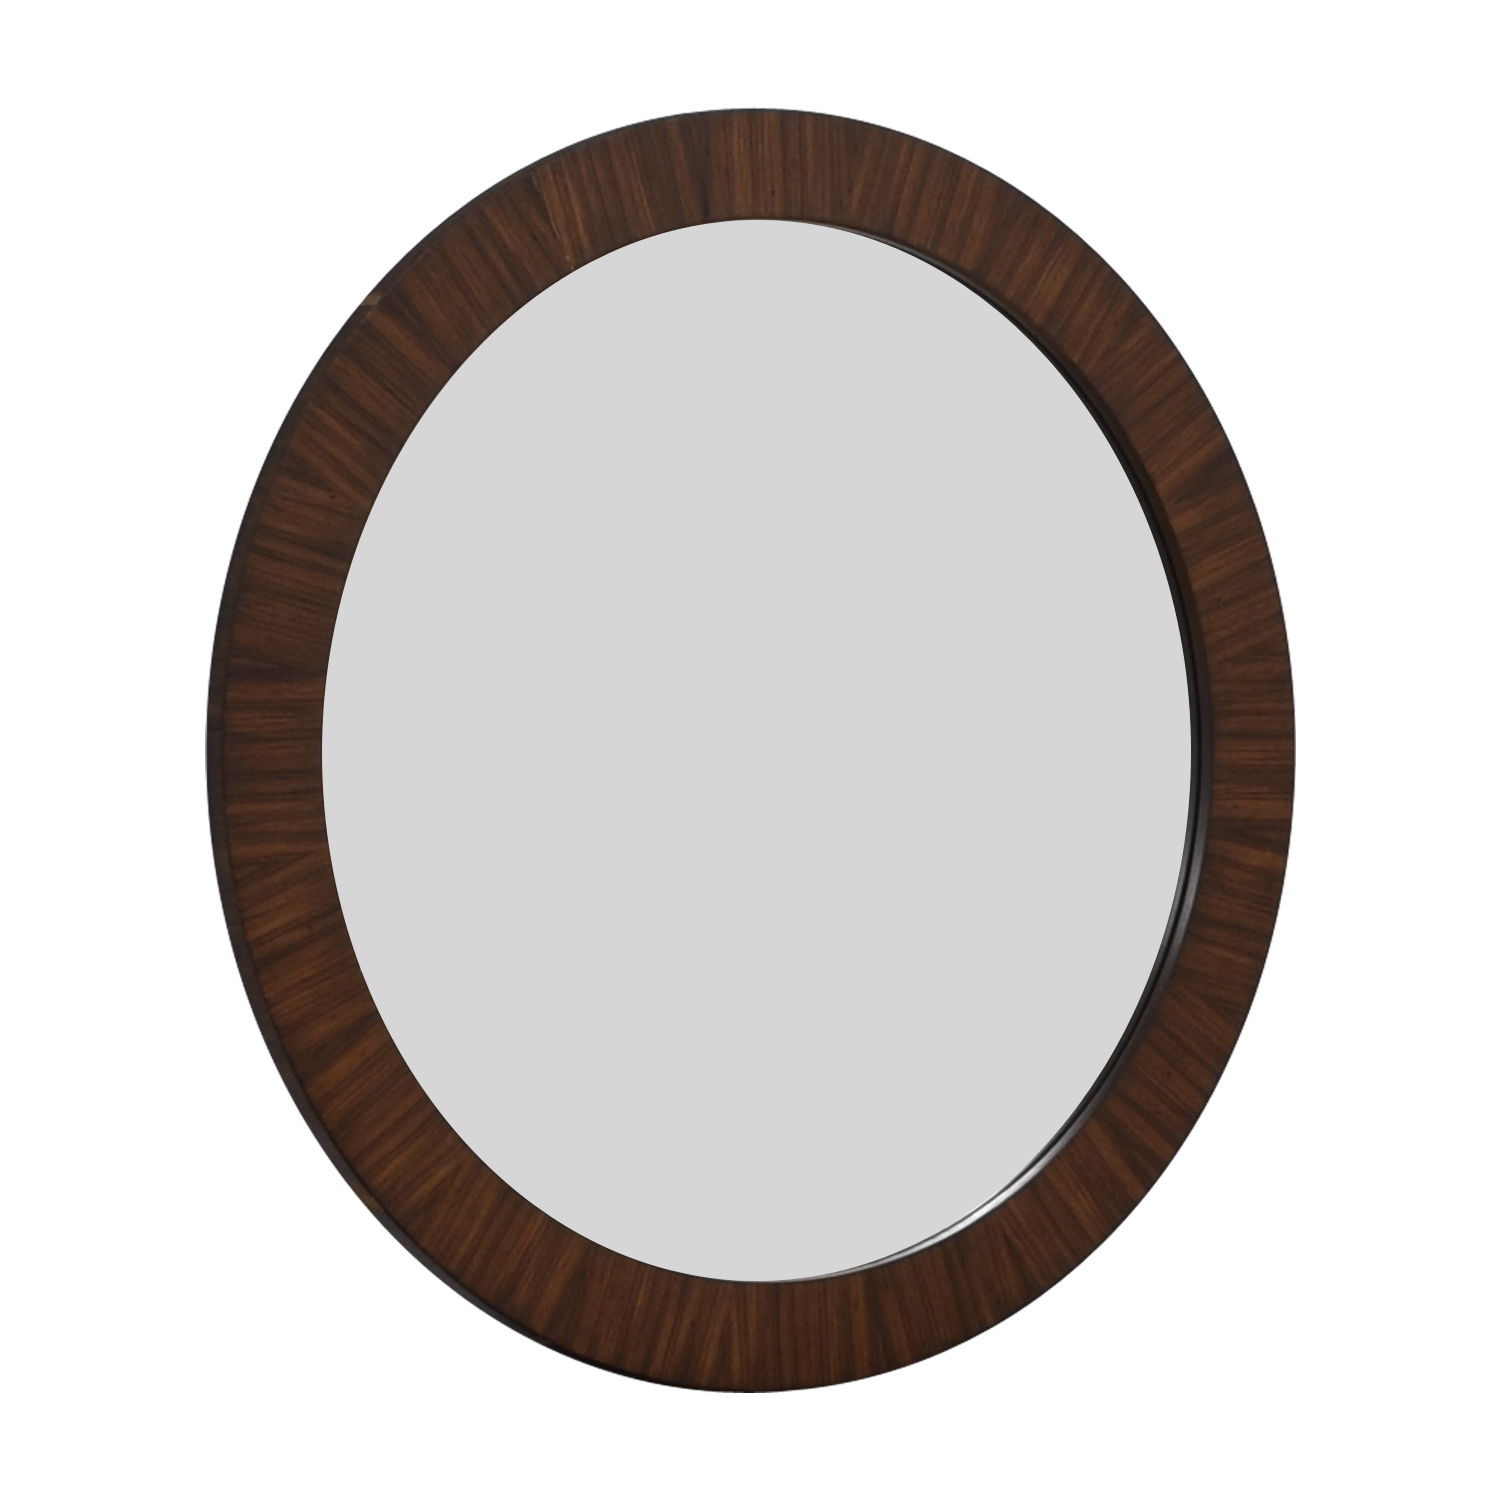 Uttermost Wood Circular Wall Mirror sale